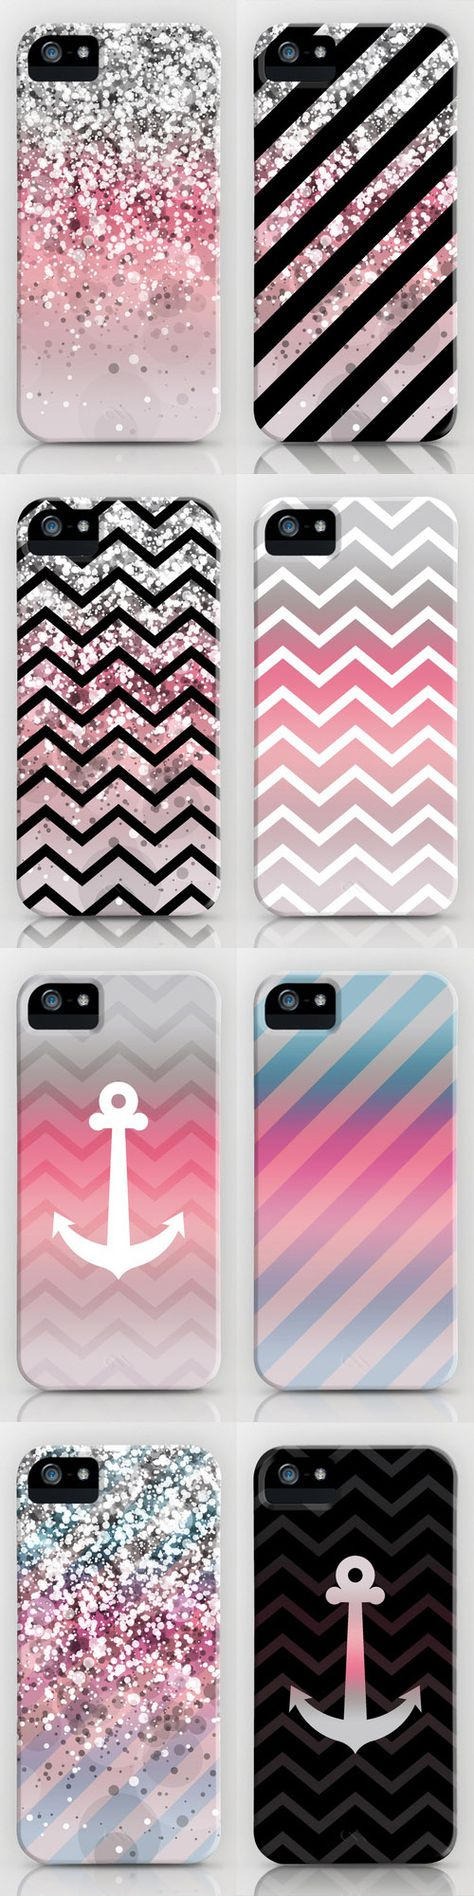 I really like the chevron and anchor ones... the sparkles not so much.